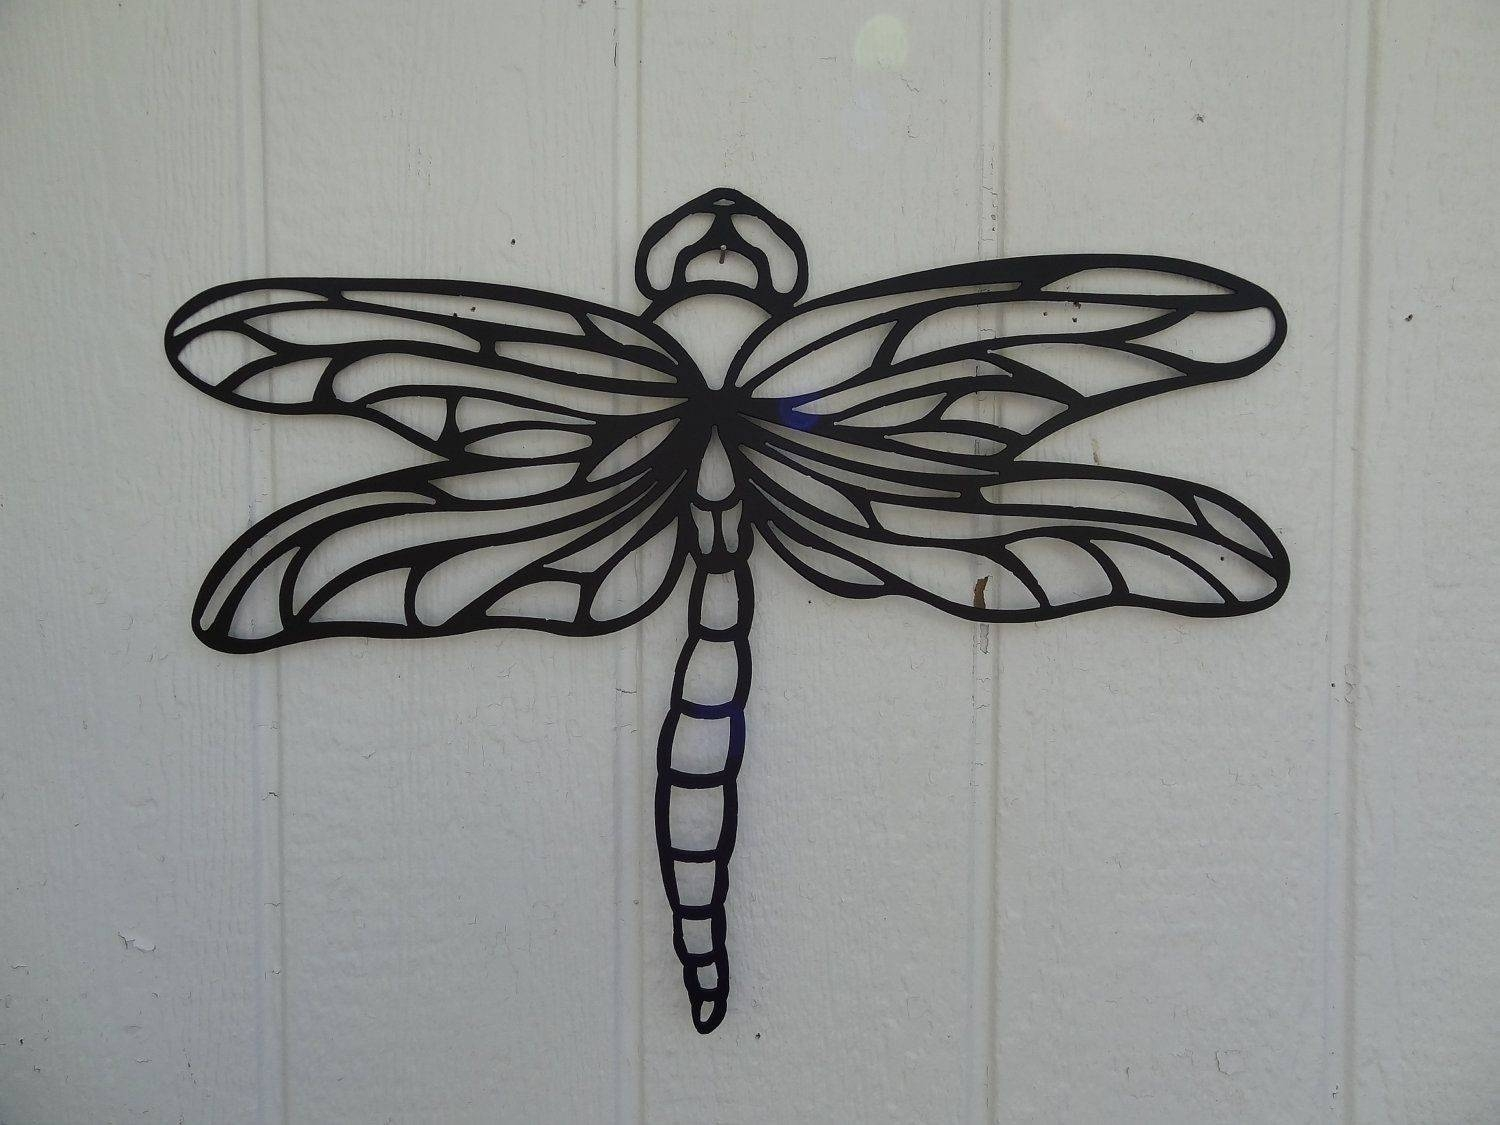 Custom Dragonfly 2Ft Metal Wall Art Home Garden Kitchen Decor Inside Latest Dragonfly Metal Wall Art (View 2 of 20)